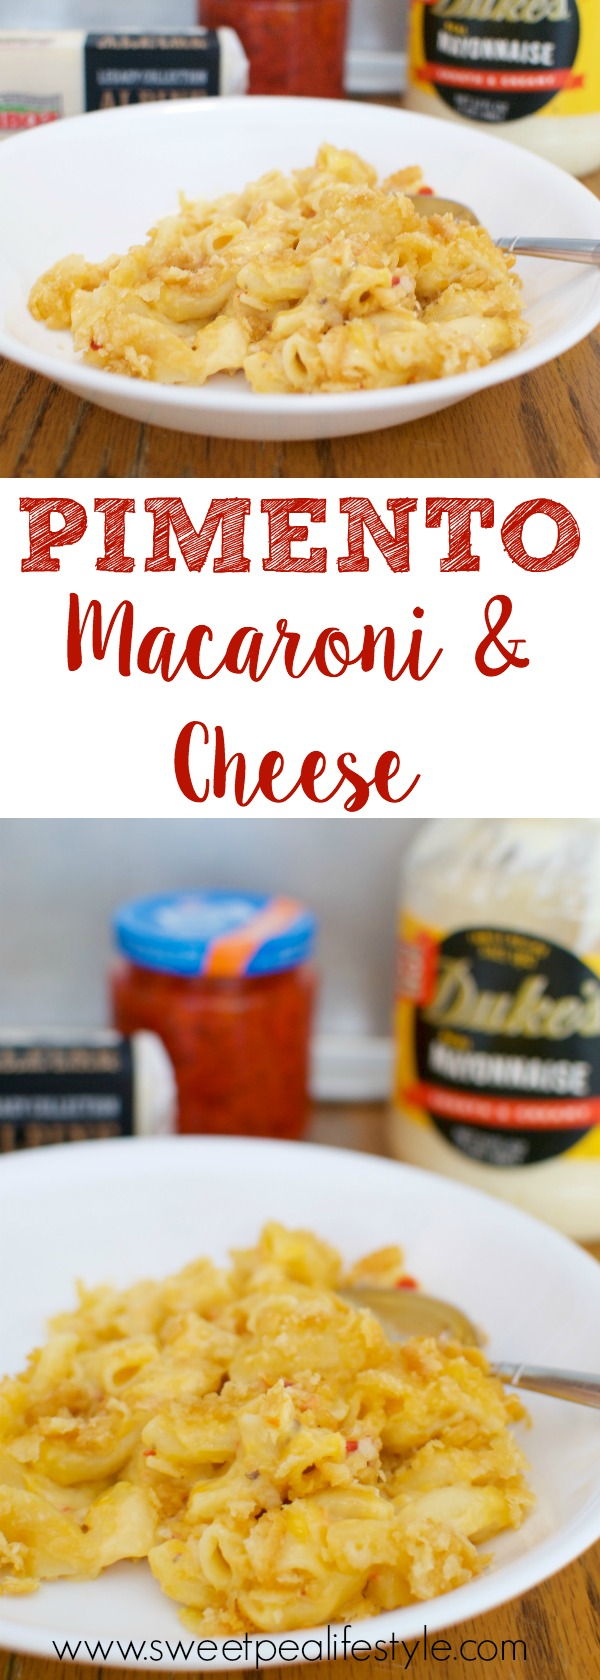 pimento macaroni and cheese casserole